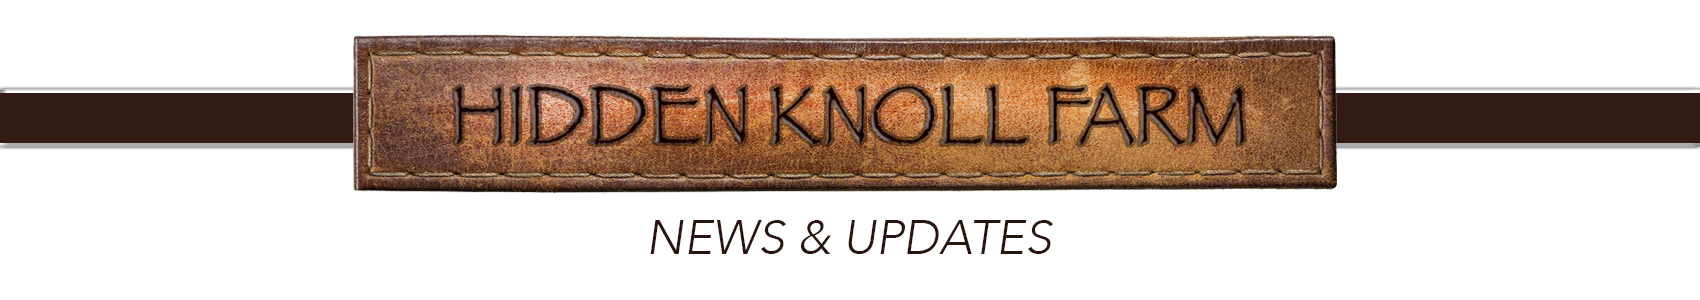 Hidden Knoll Farm News Updates